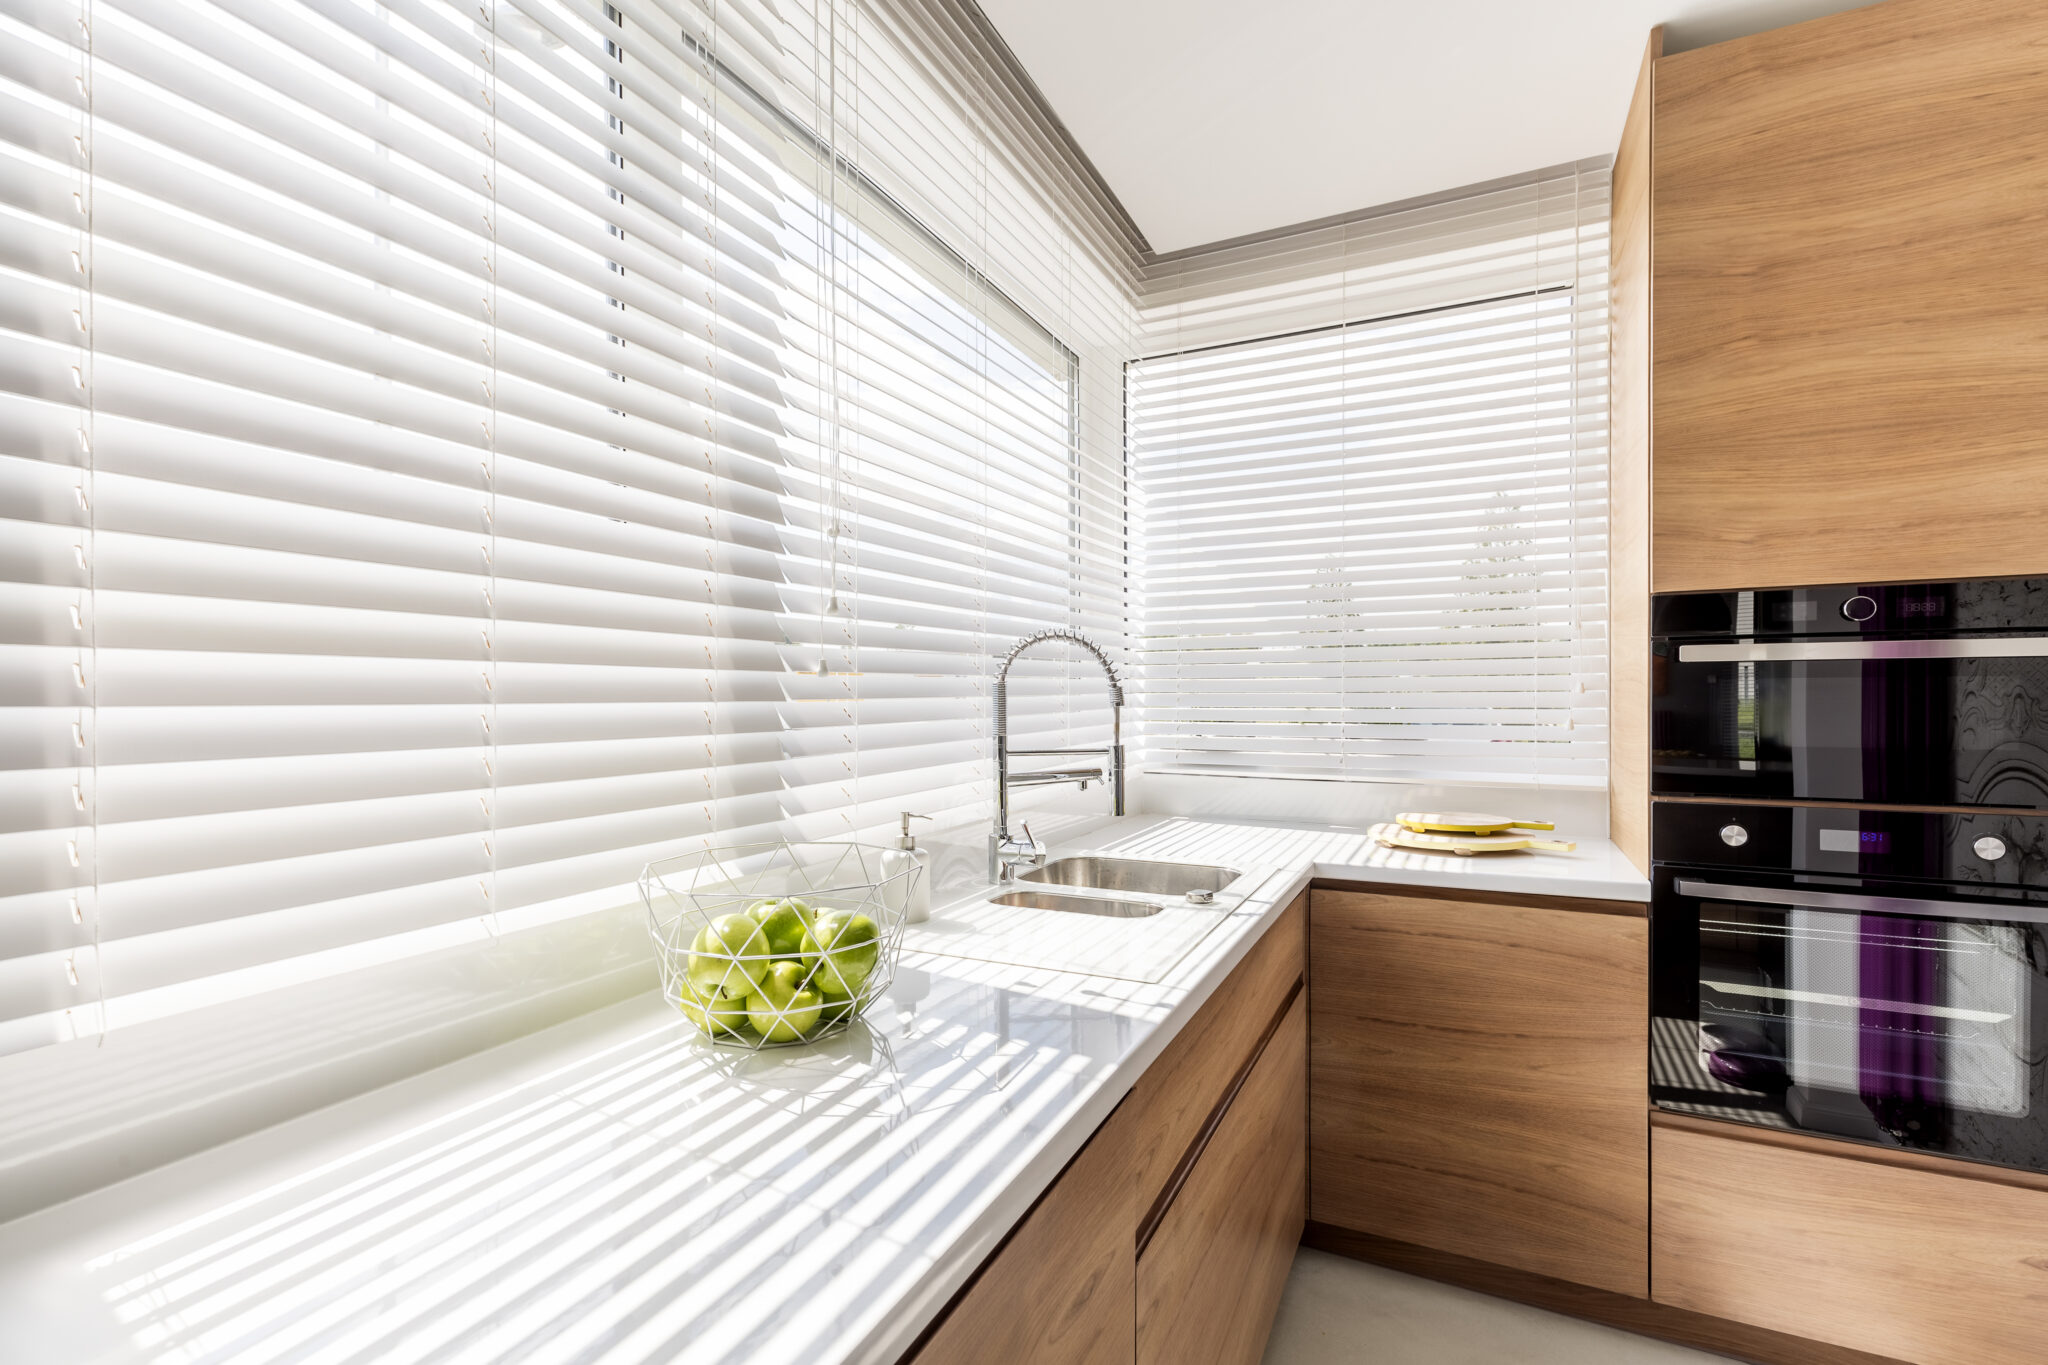 White venetian blinds in a kitchen space that are half open.